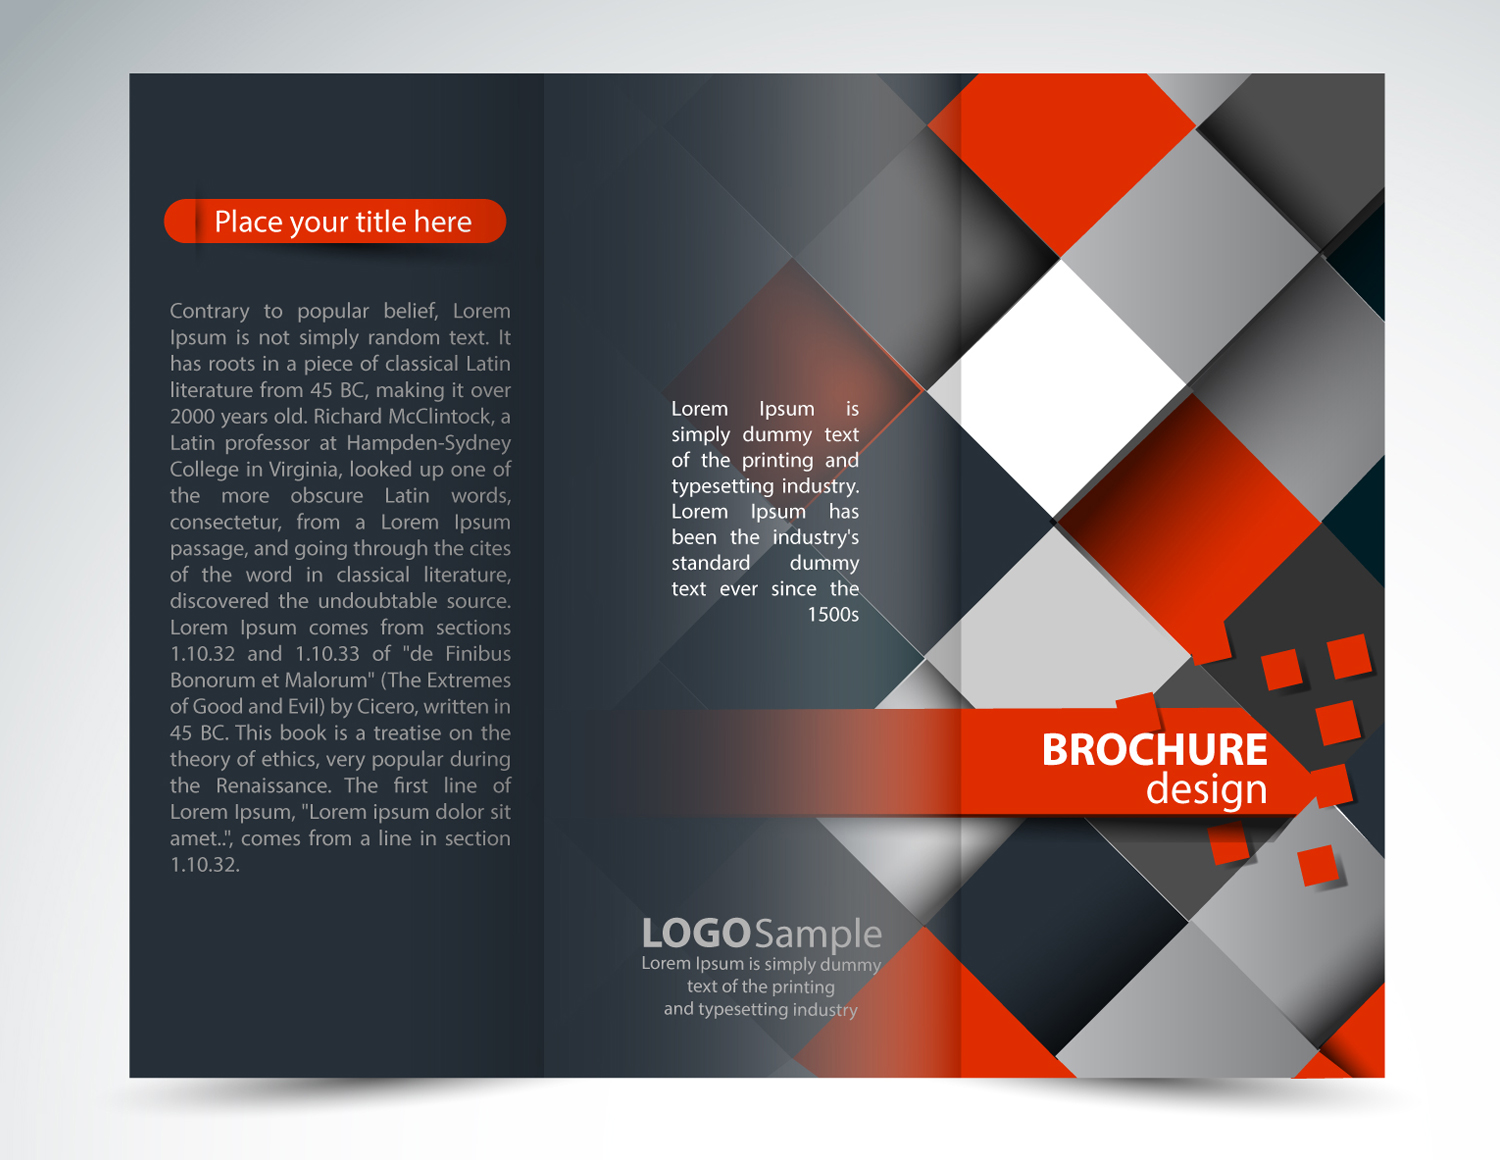 Fashion brochure design for Brochure design quotation